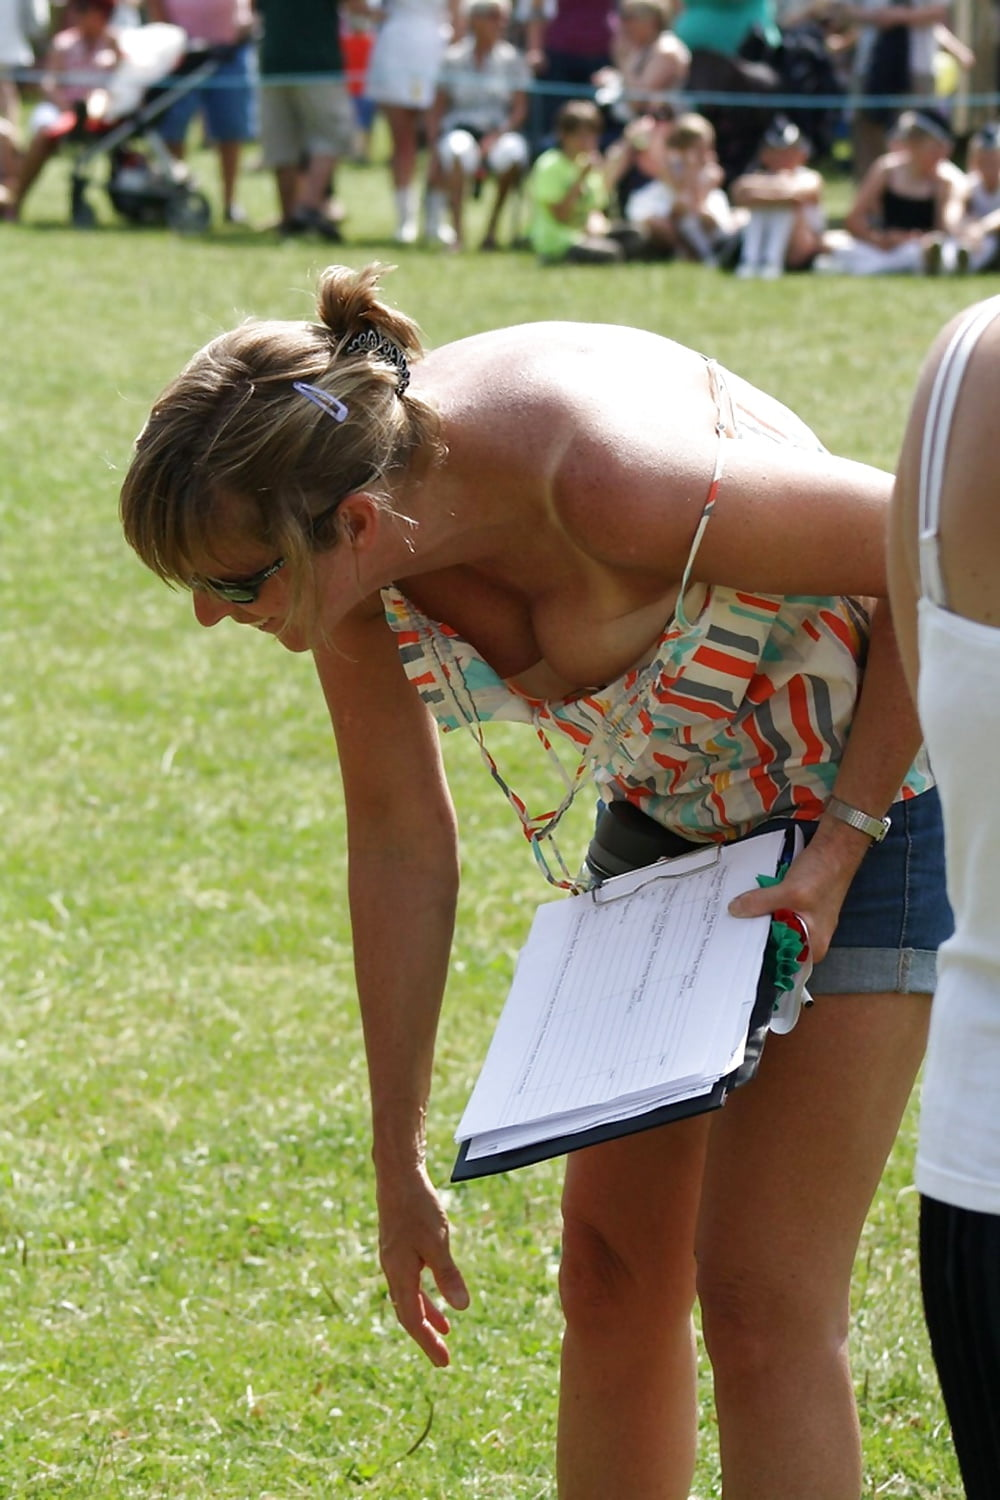 Upskirt downblouse sports events clips, mother fuck old man porn